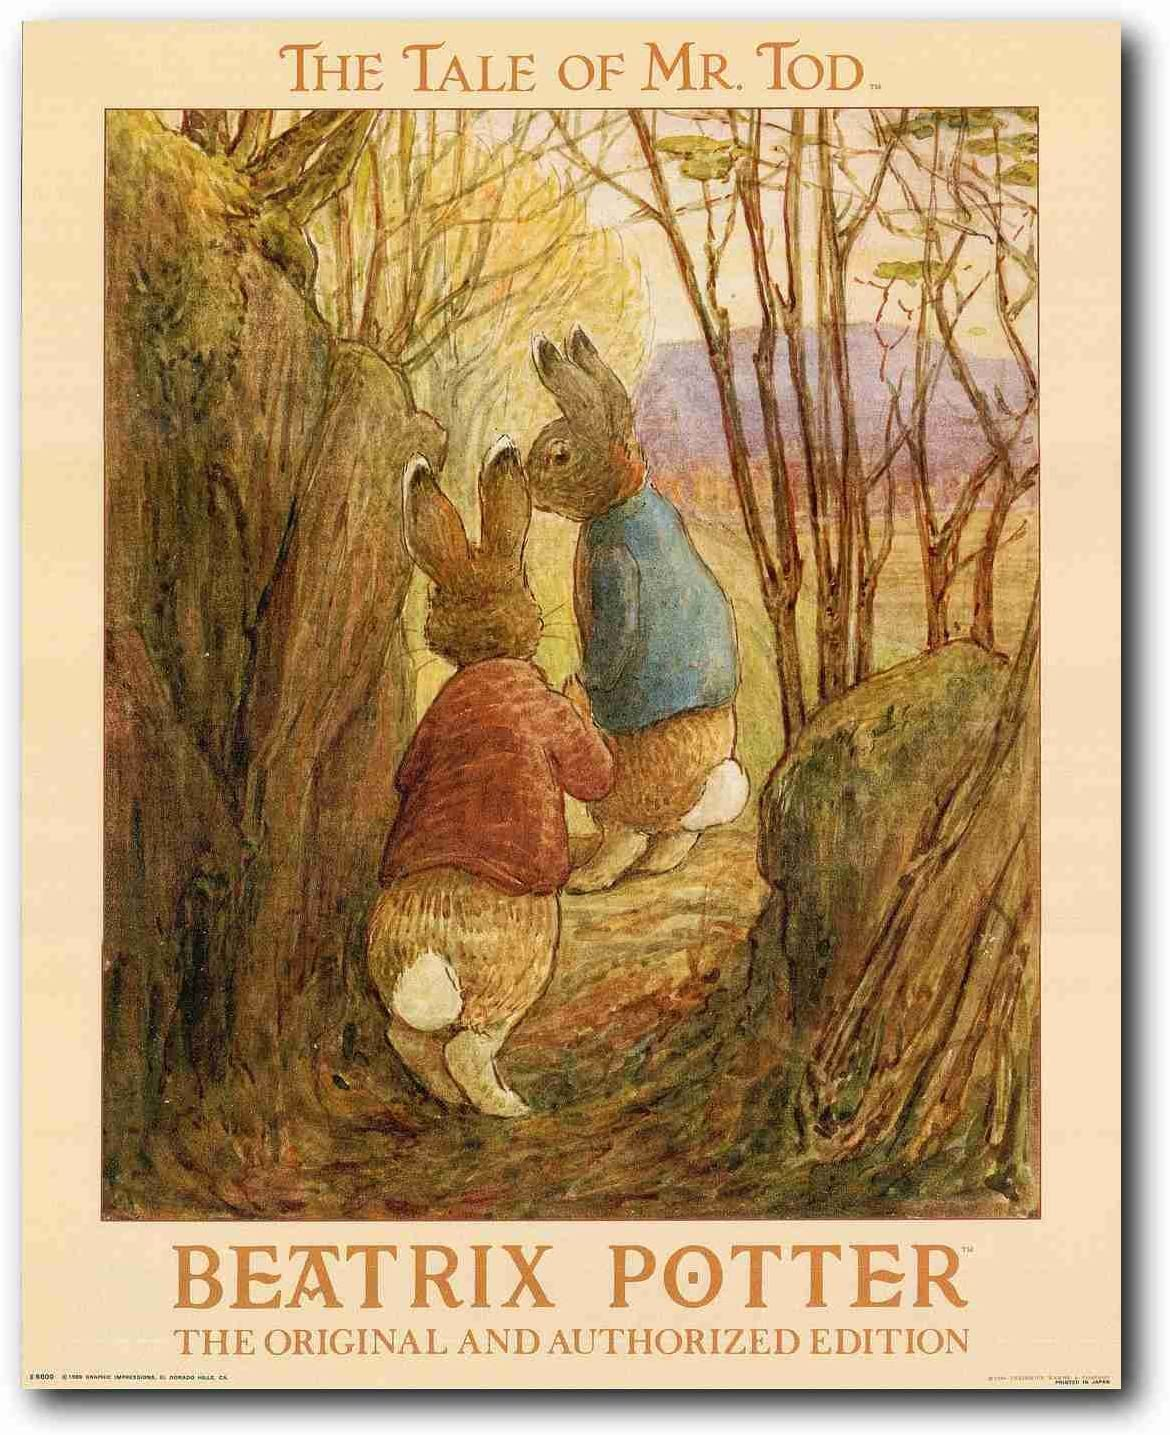 The Tale of Mr. Tod Beatrix Potter Original and Authorized Edition Wall Decor Art Print Poster (16x20)